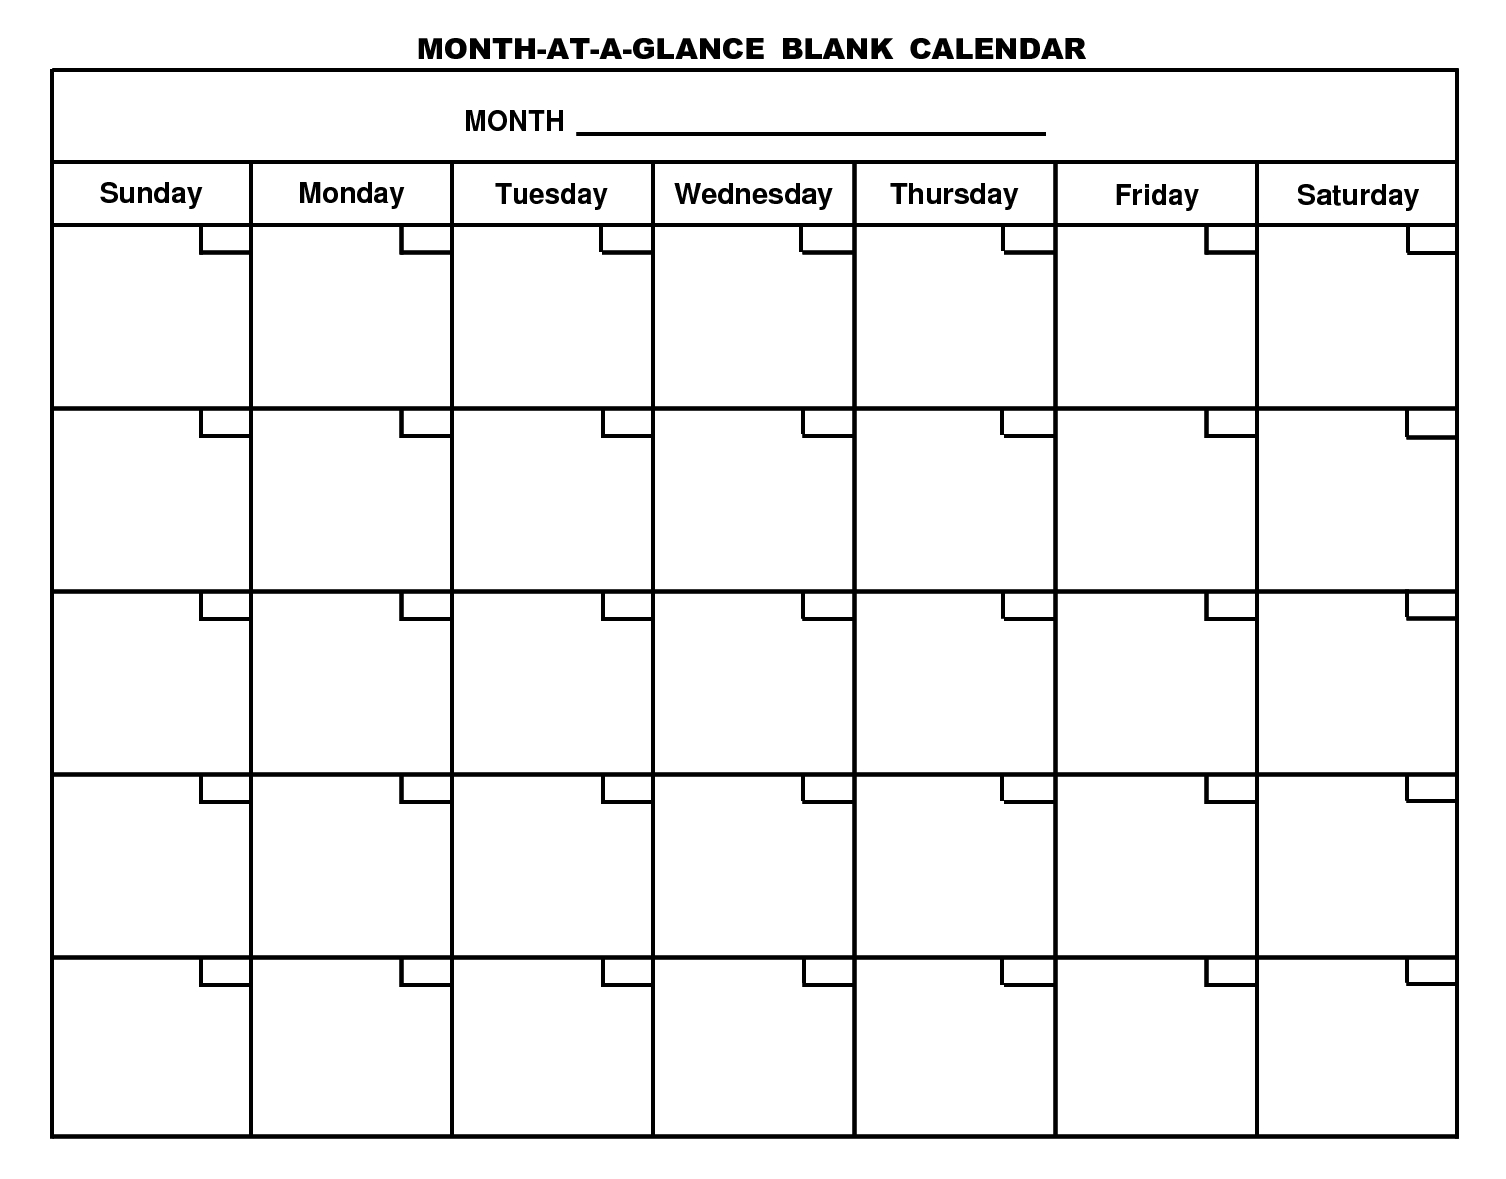 Printable Blank Monthly Calendar - Yeniscale.co  Printable Editable Monthly Calendar Template